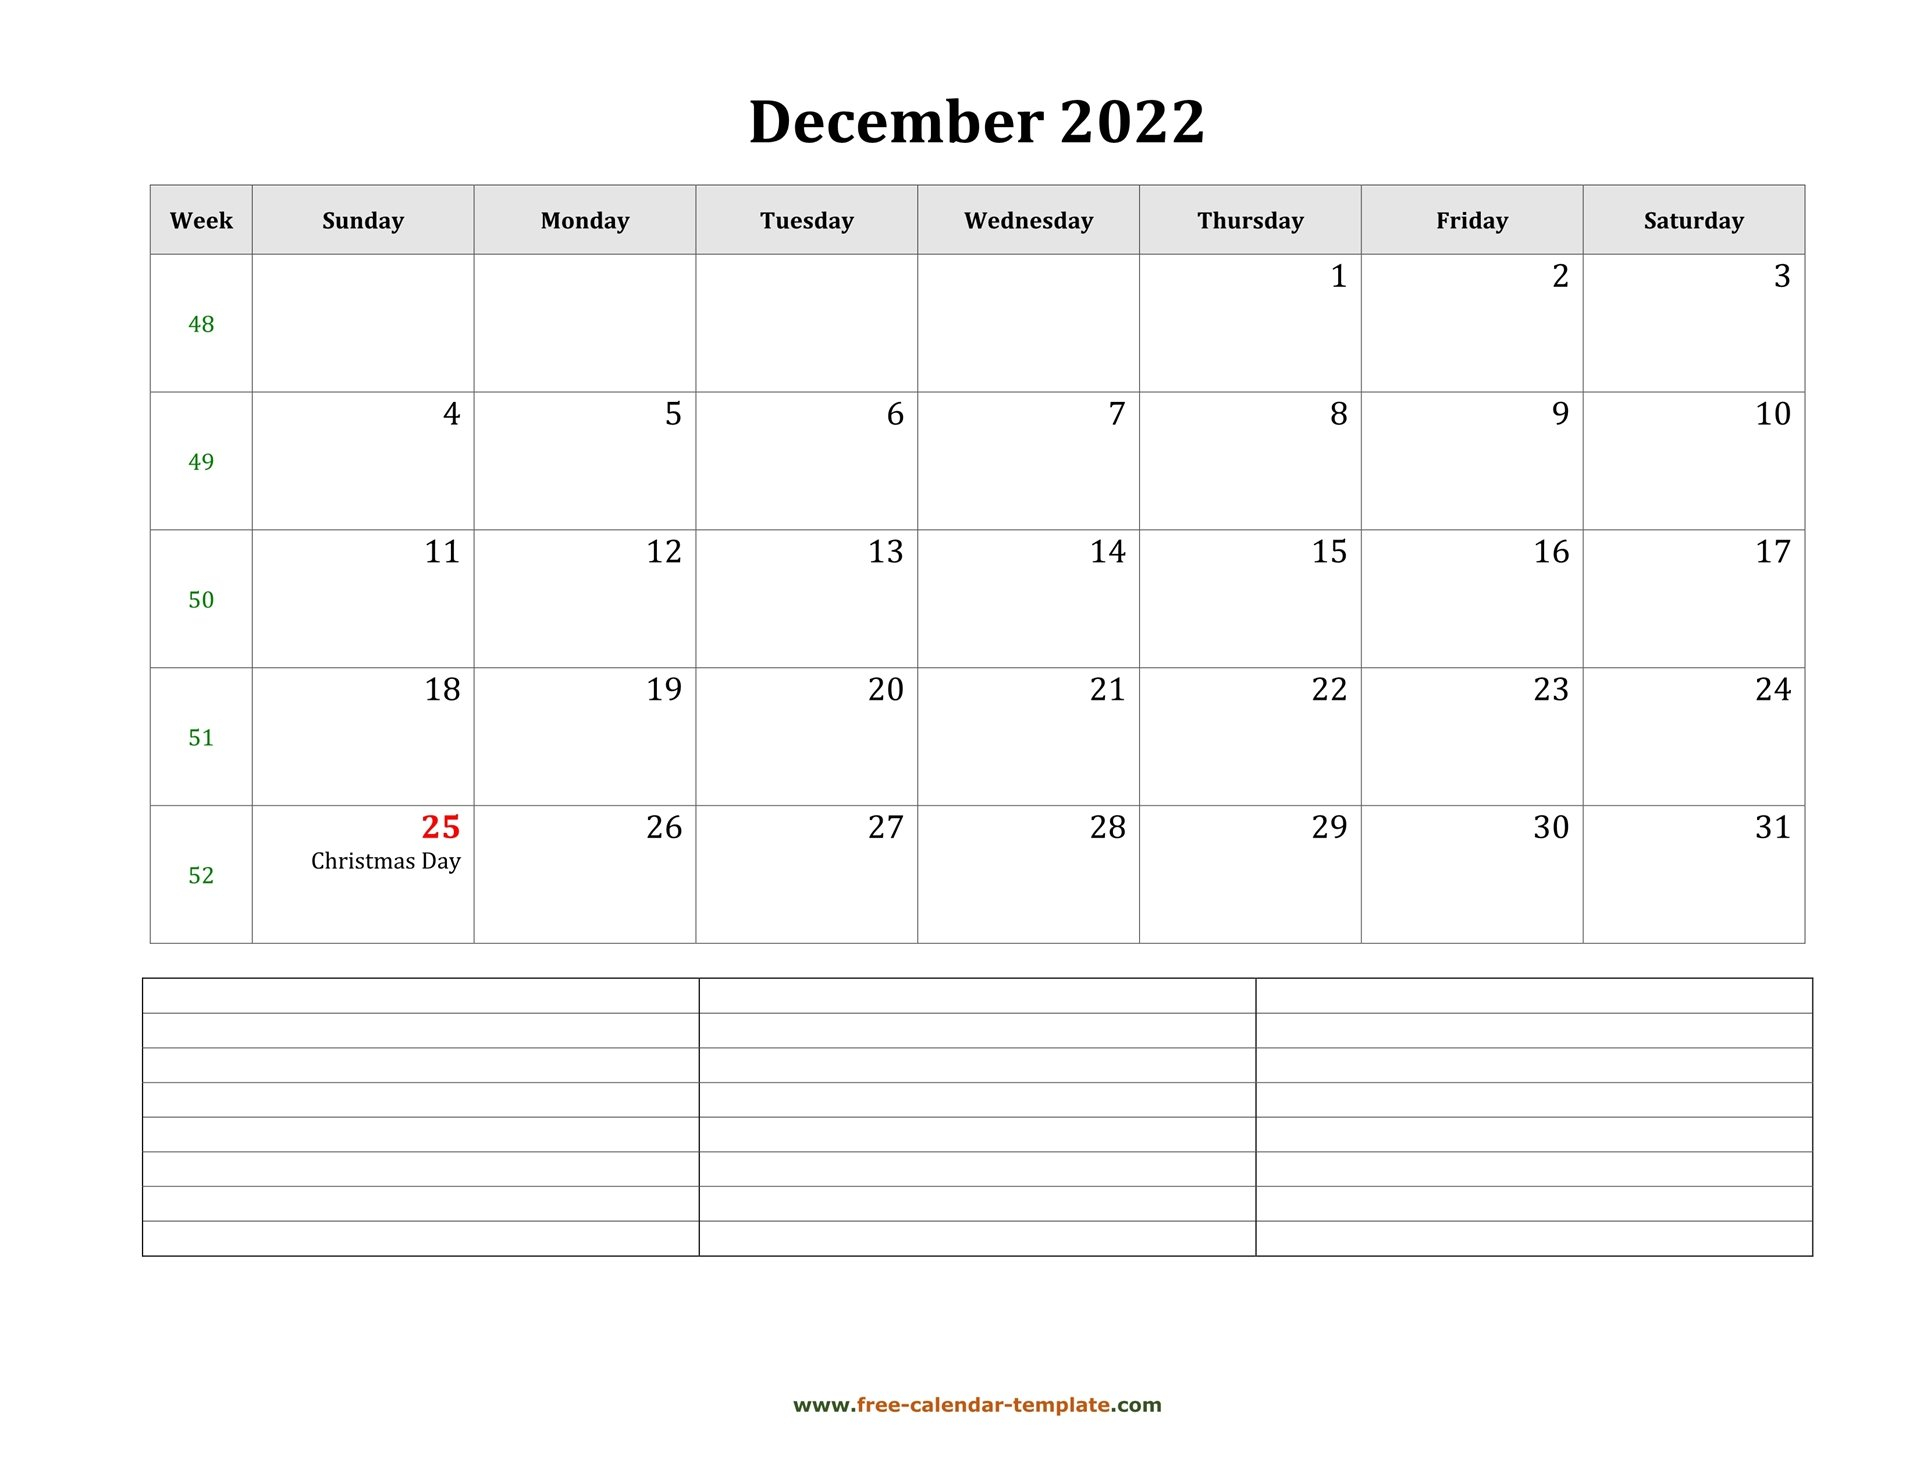 2022 Printable December Calendar With Space For pertaining to Free Witchy Planner Printable December 2022 Photo